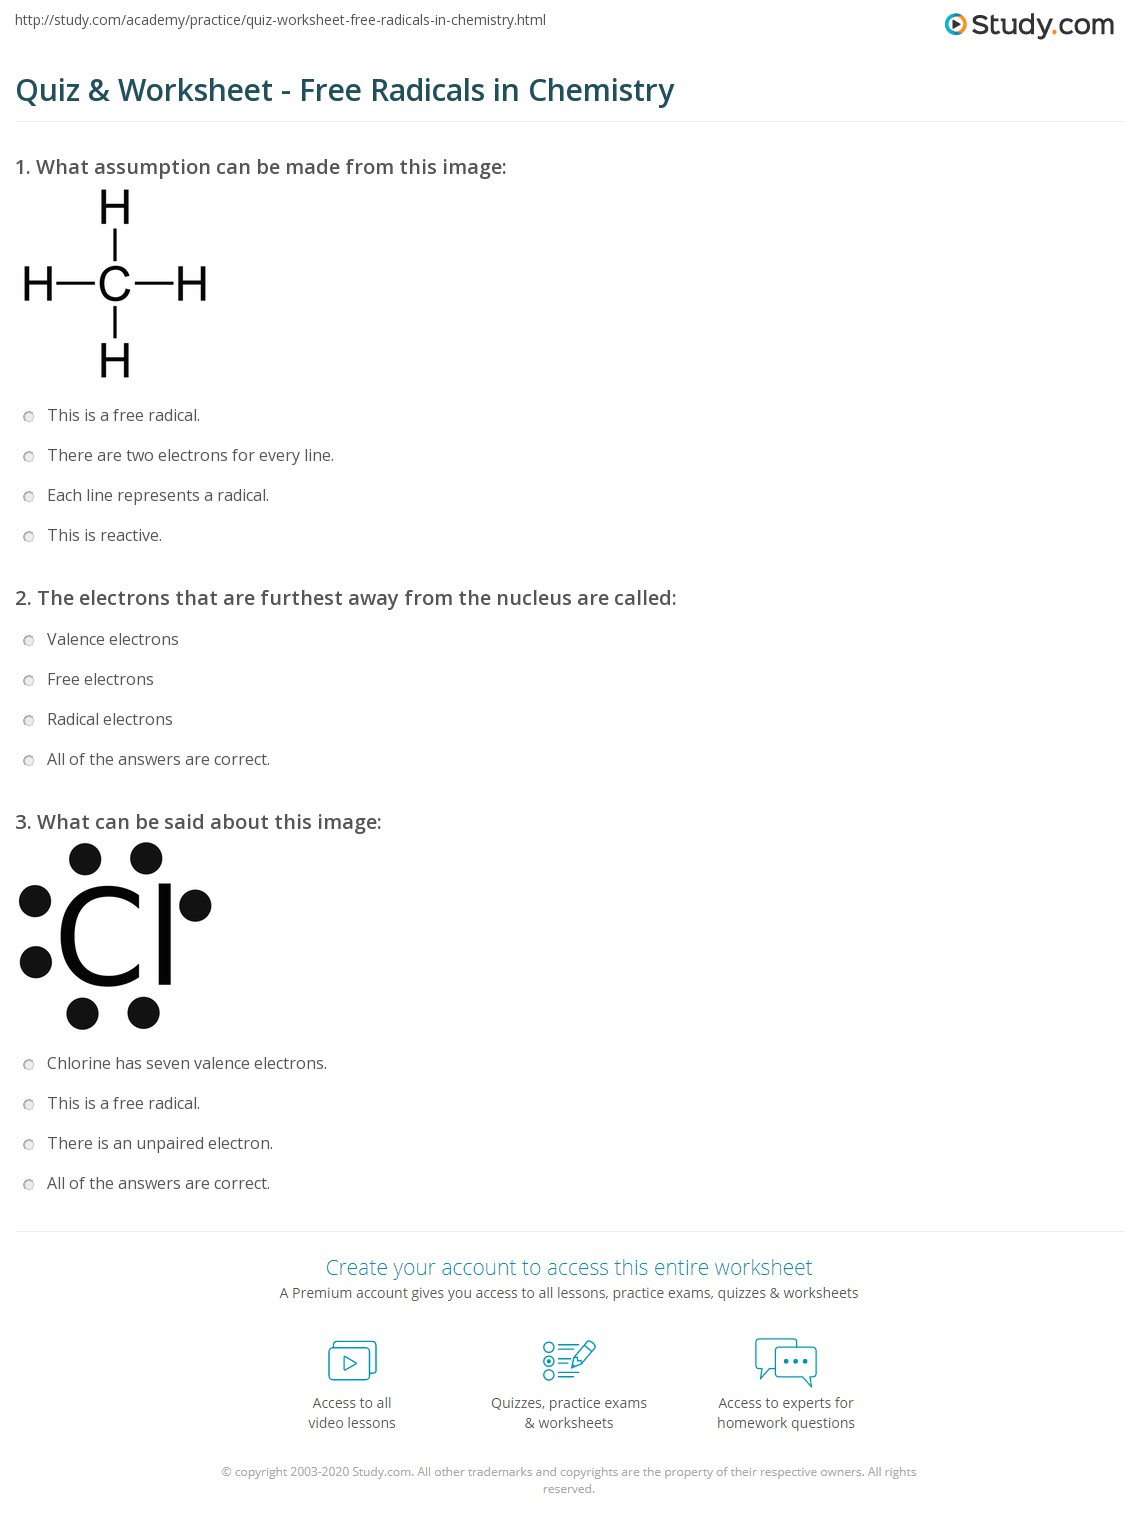 Bill Nye Chemical Reactions Worksheet 019 - Bill Nye Chemical Reactions Worksheet